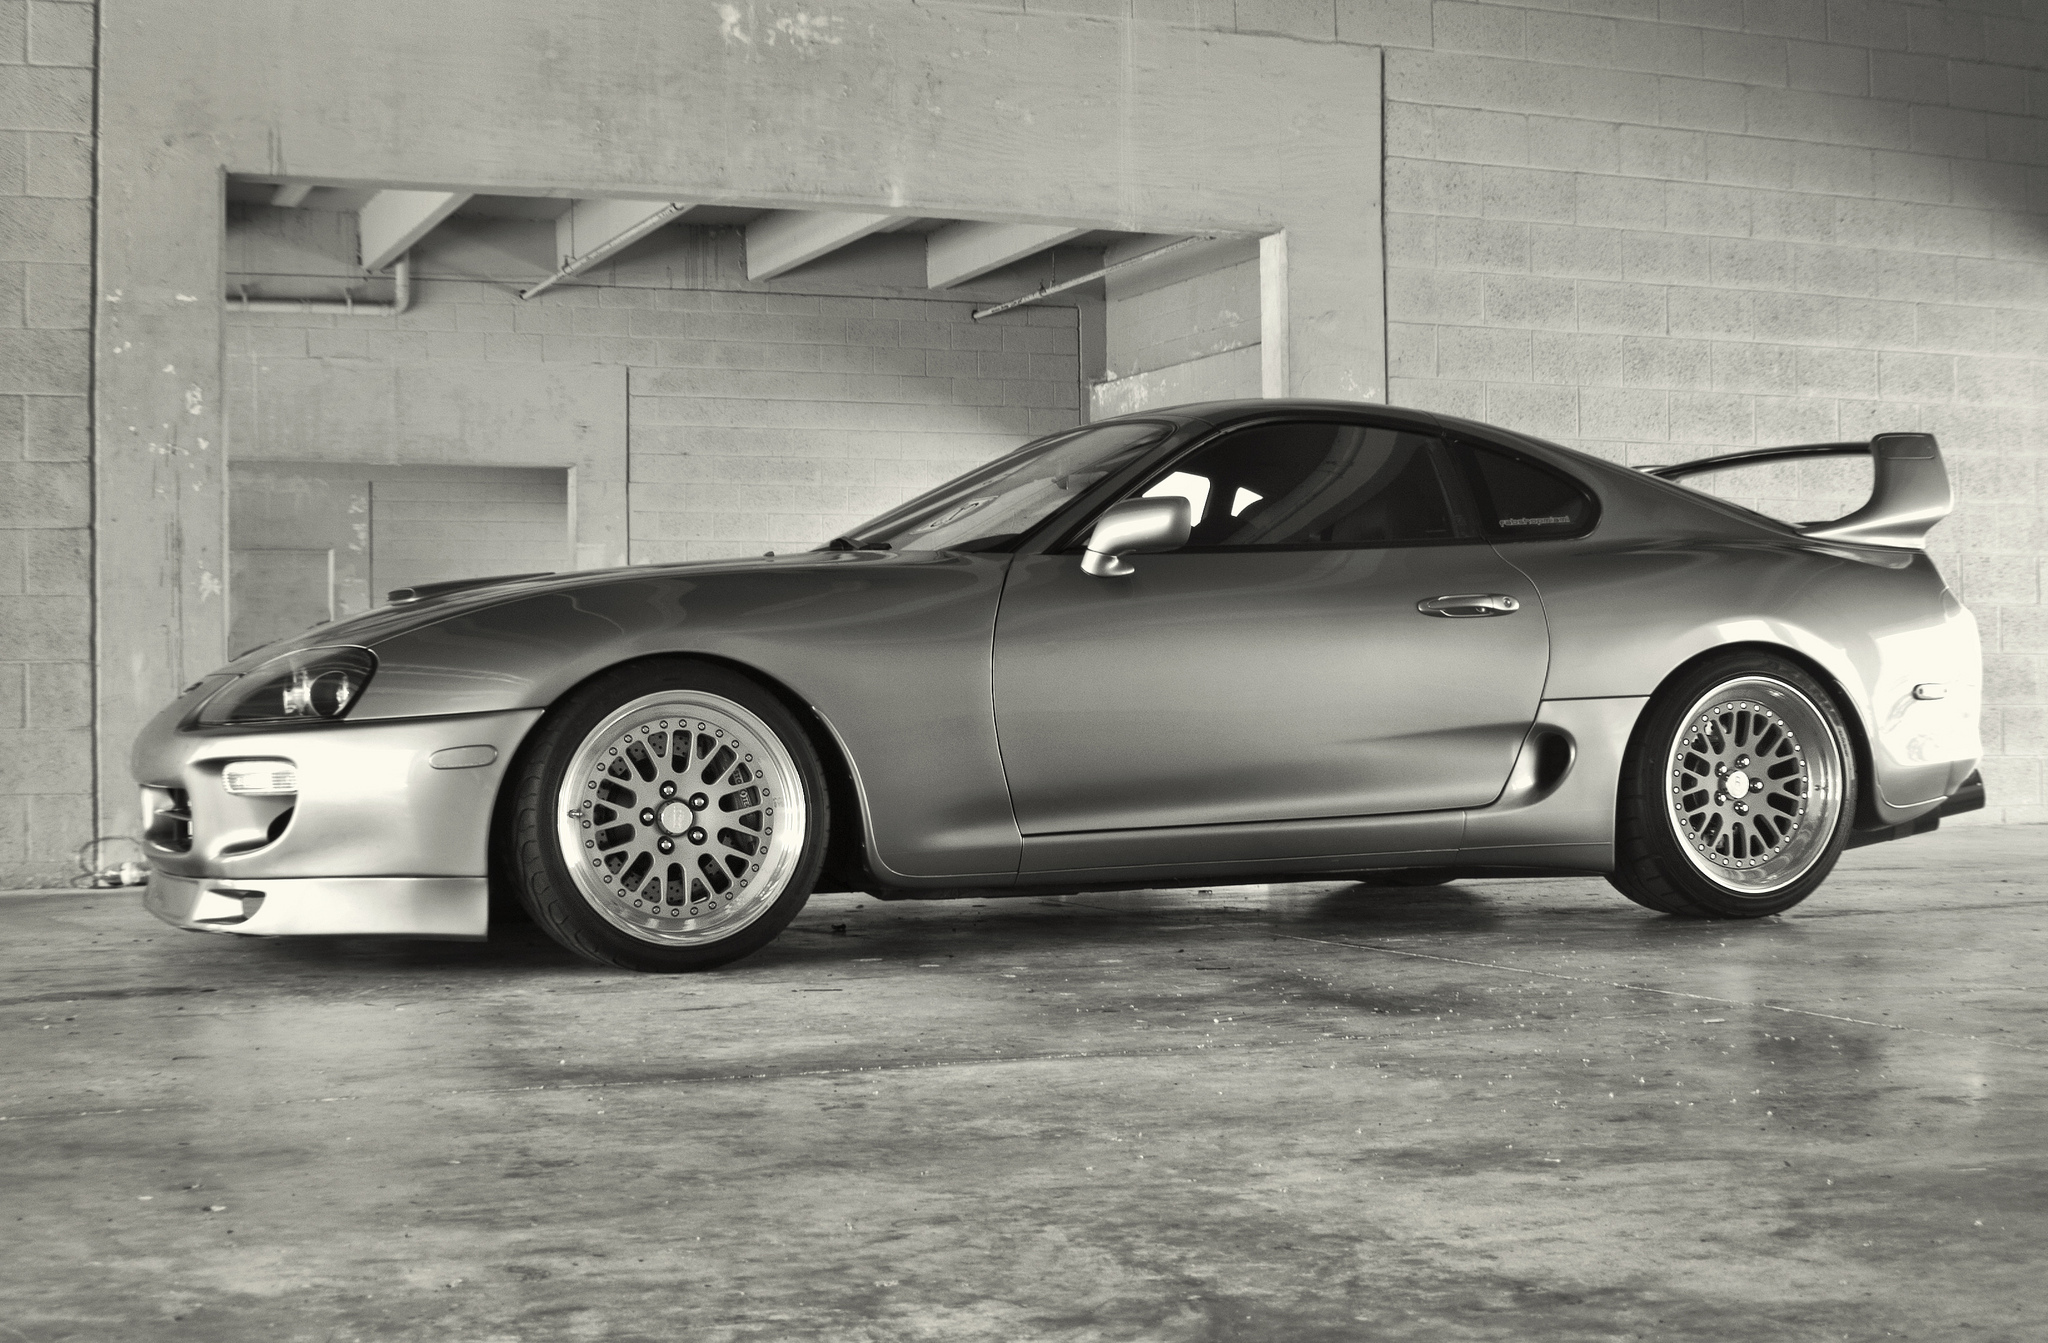 Toyota Supra Full Hd Wallpaper And Background Image